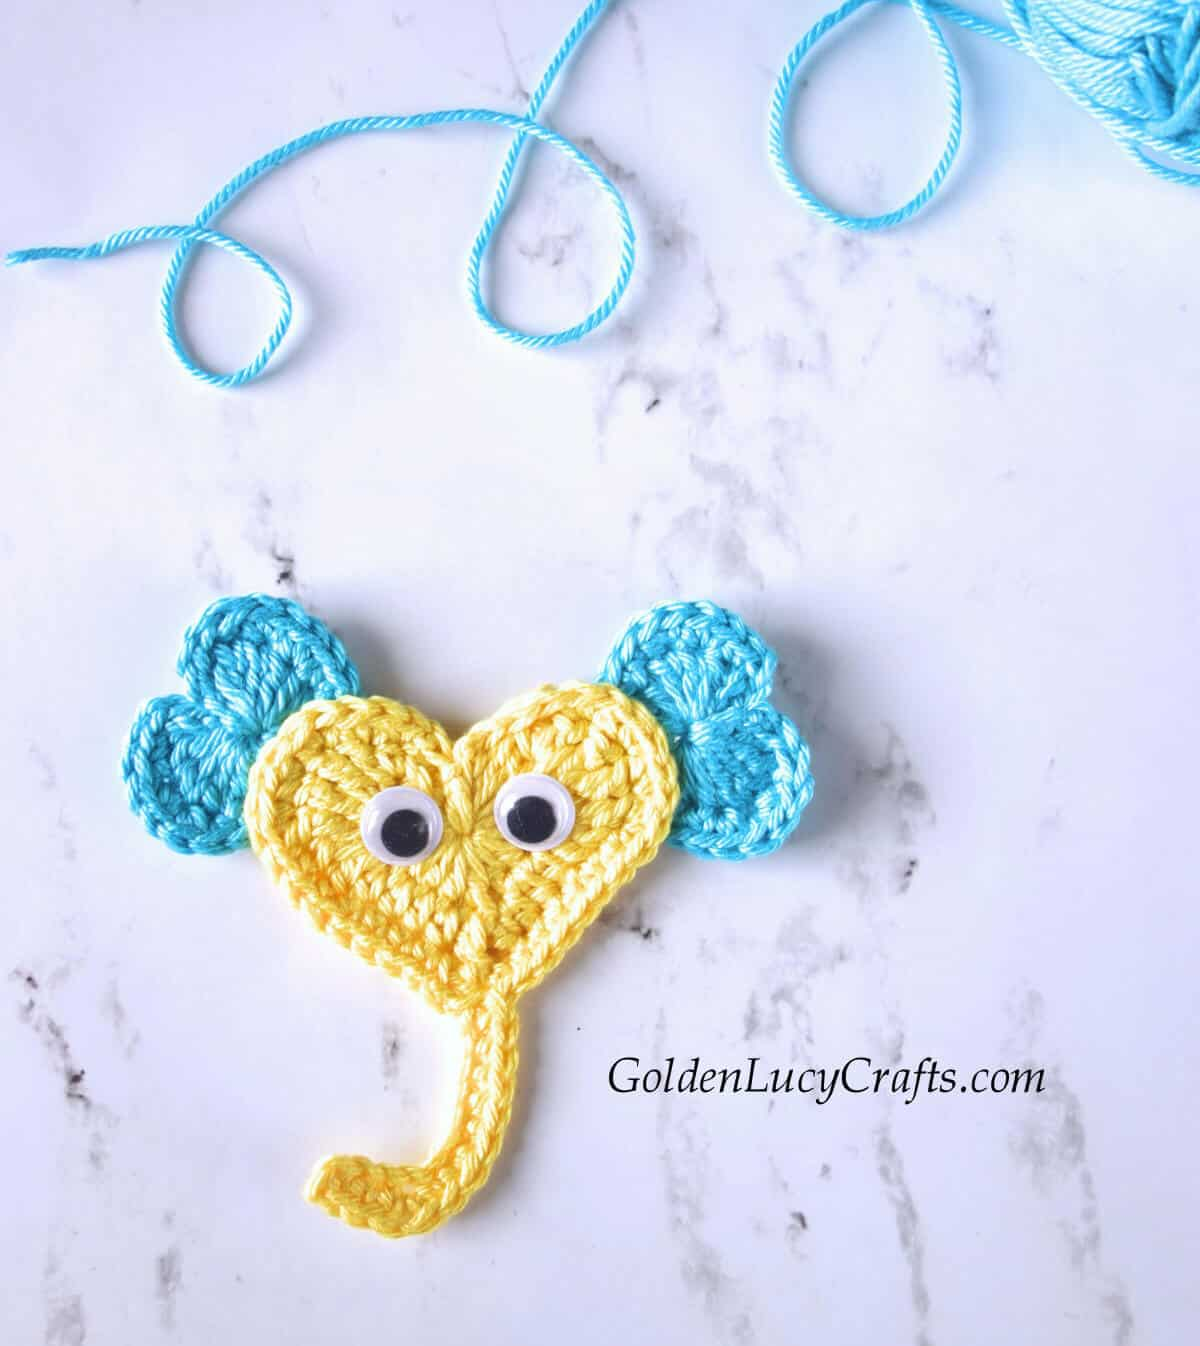 Heart-shaped elephant applique in yellow with blue ears.